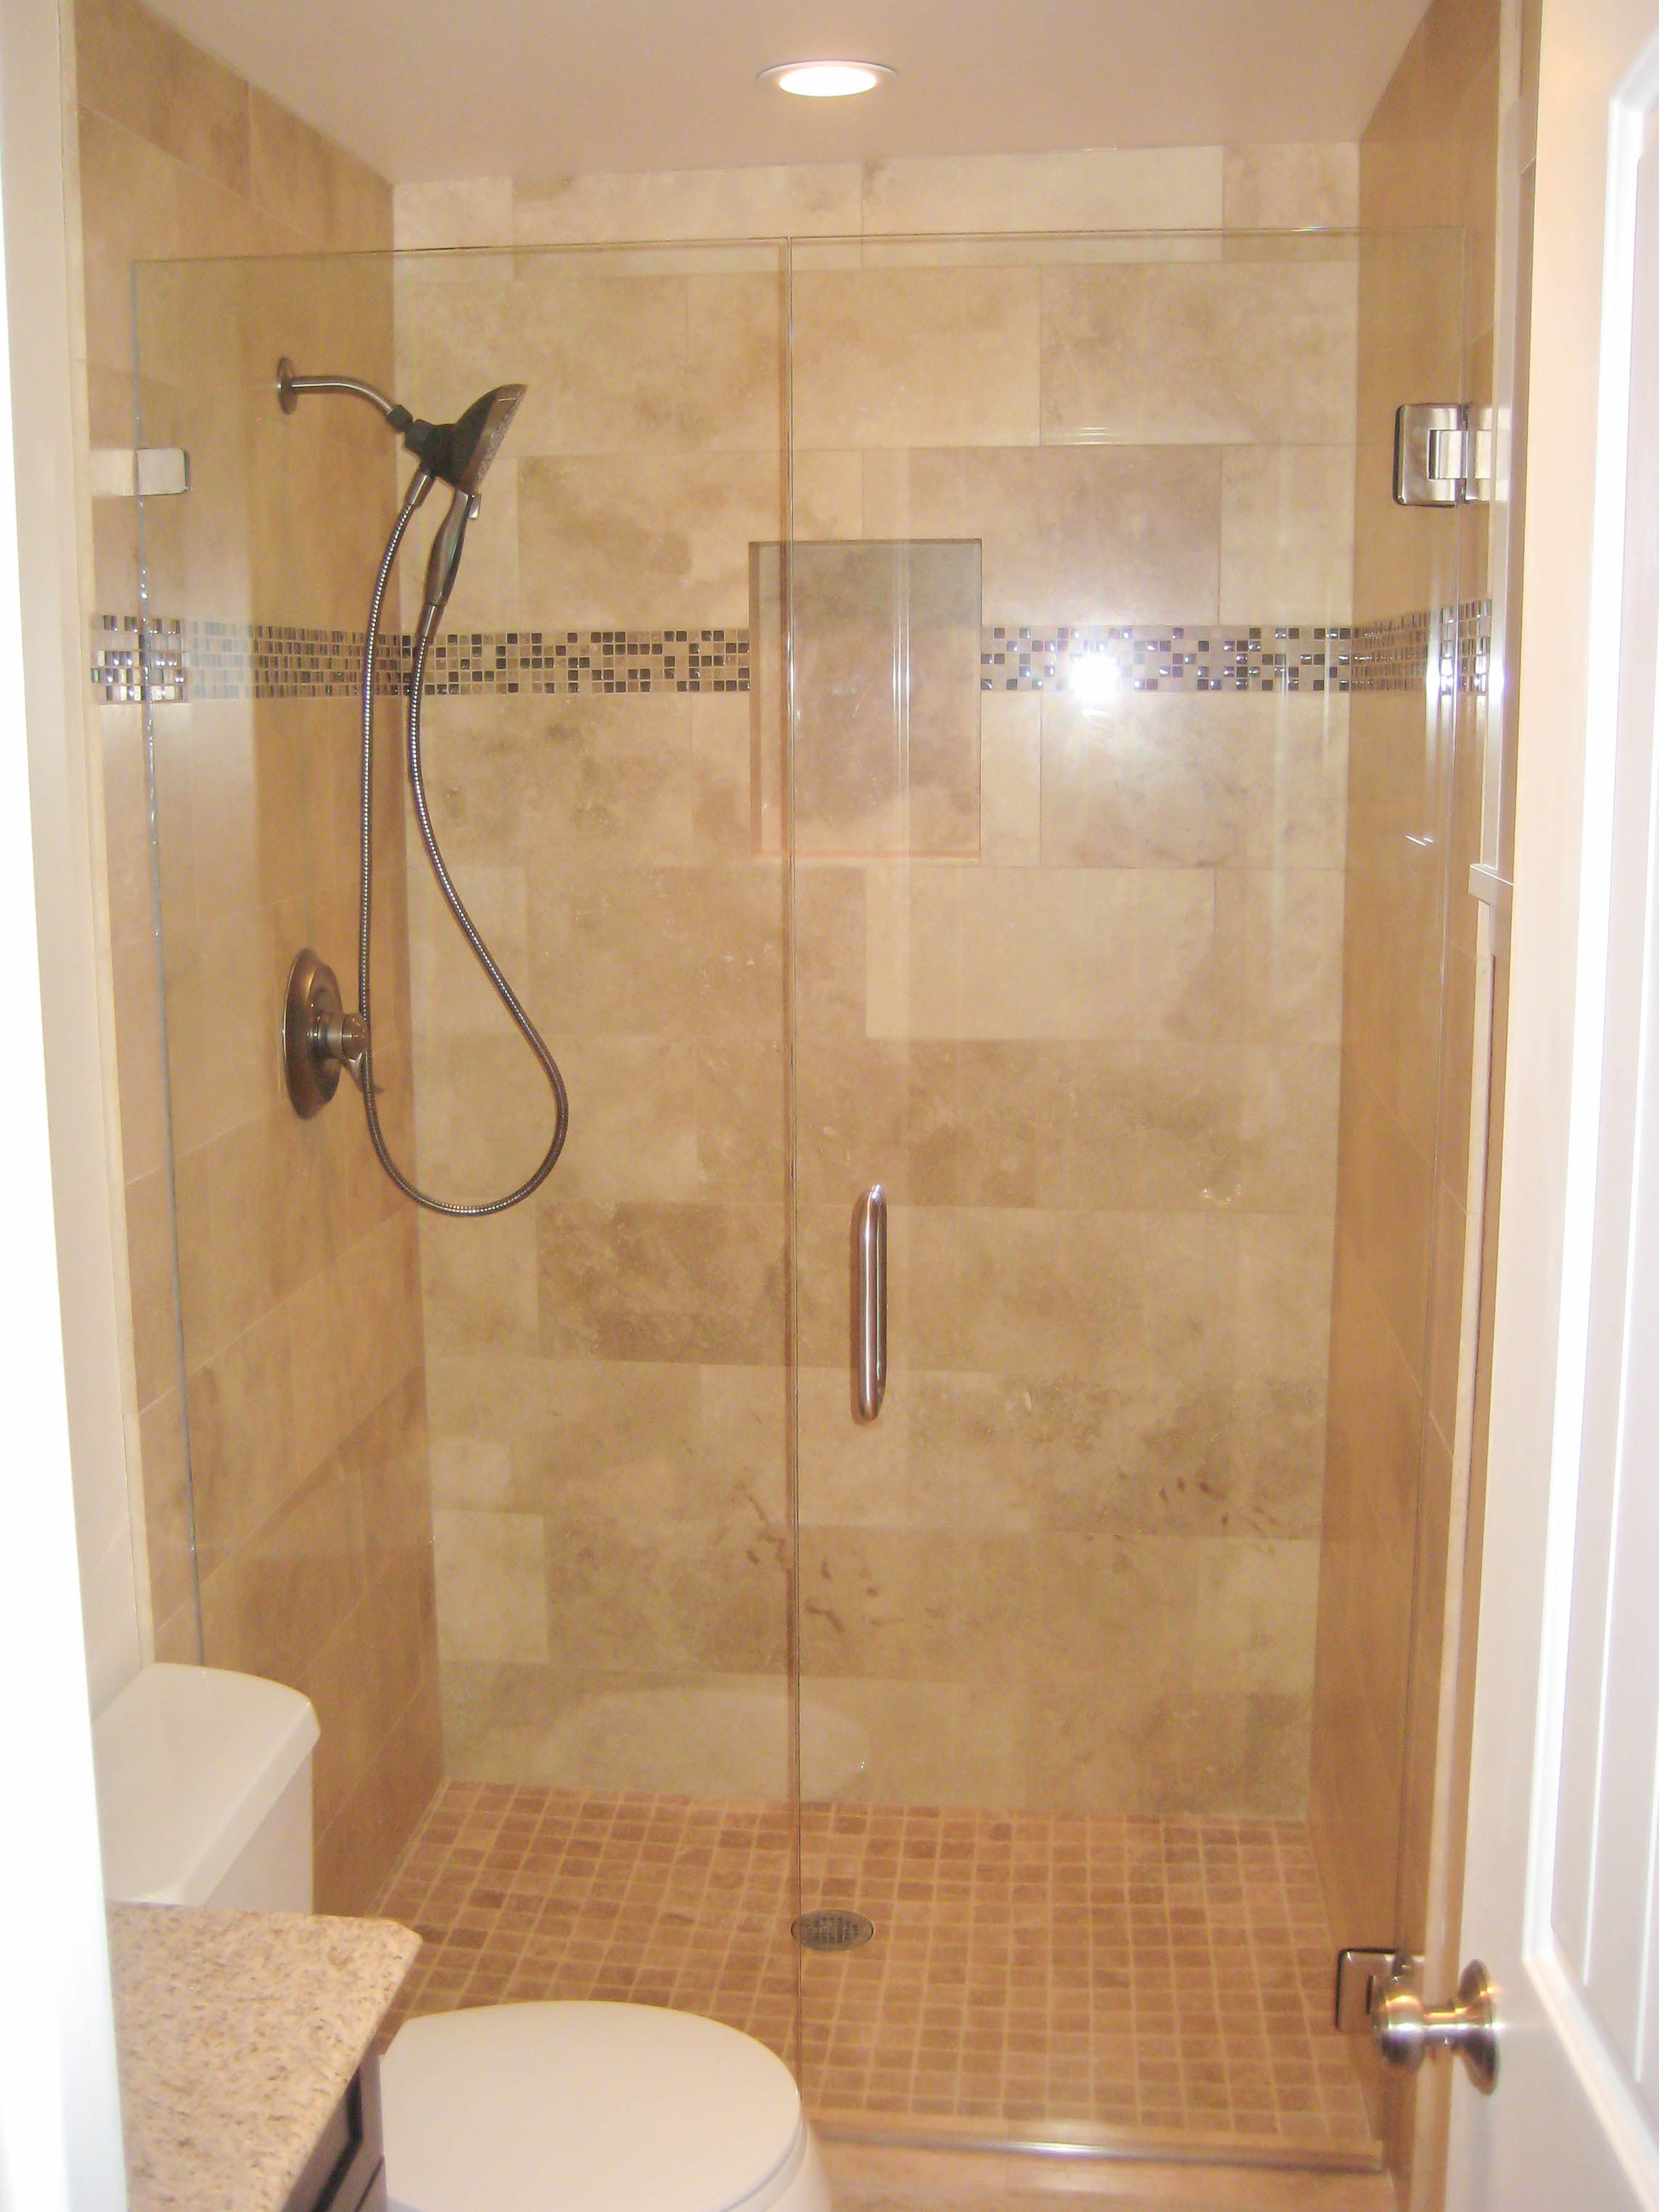 Bathroom showers photos seattle tile contractor irc tile services - Bathroom shower ideas ...